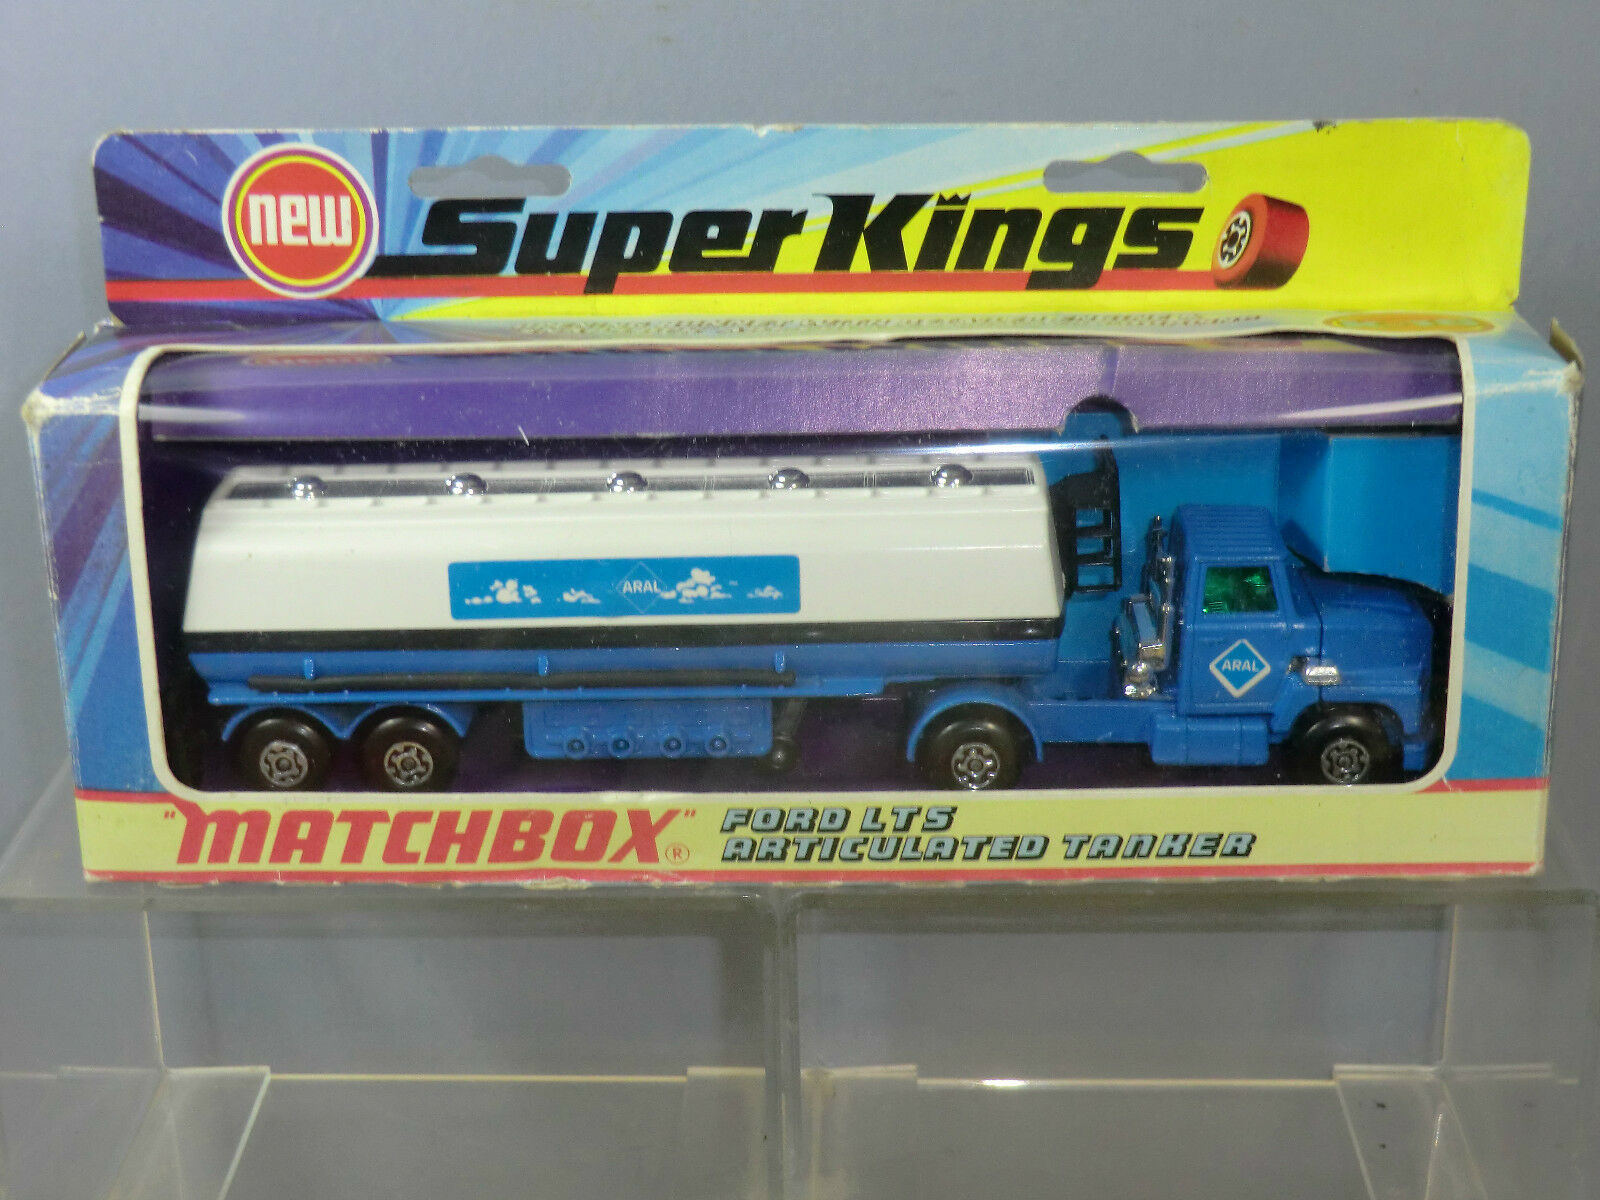 Matchbox superkings modell k-16 ford seine  aral  milch tanker im mib